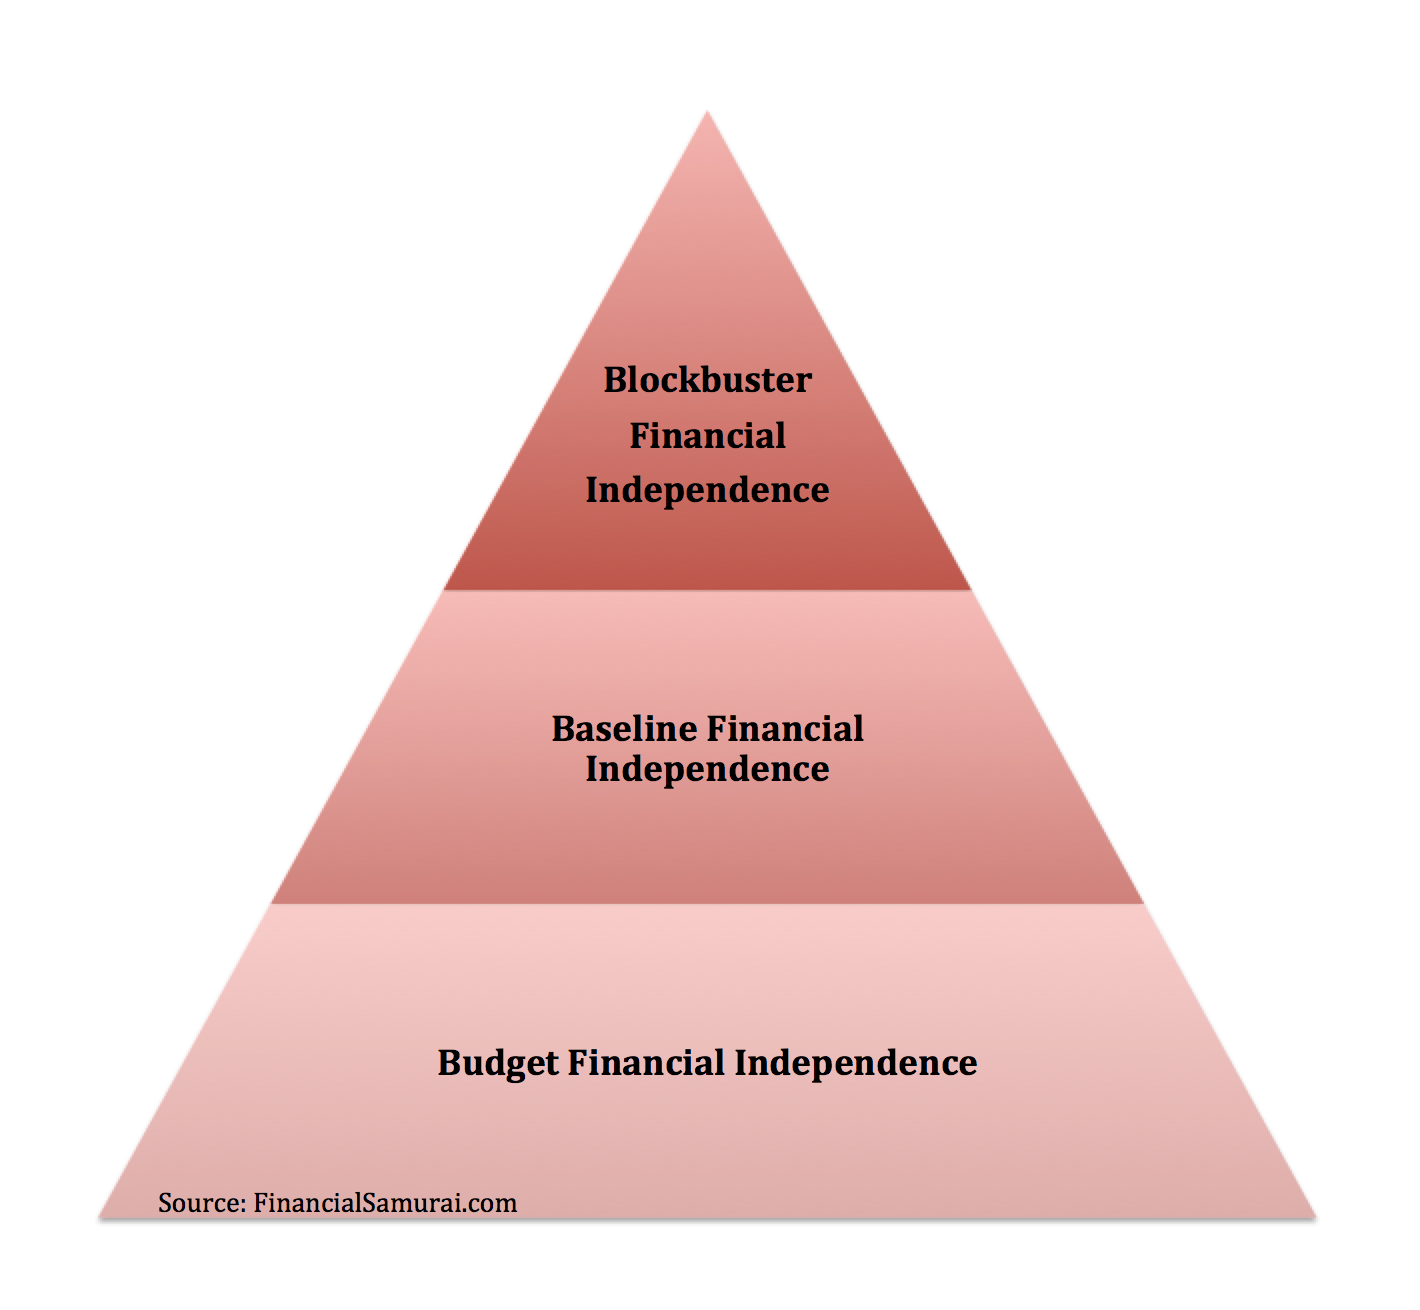 The Three Levels Of Financial Independence by Financial Samurai